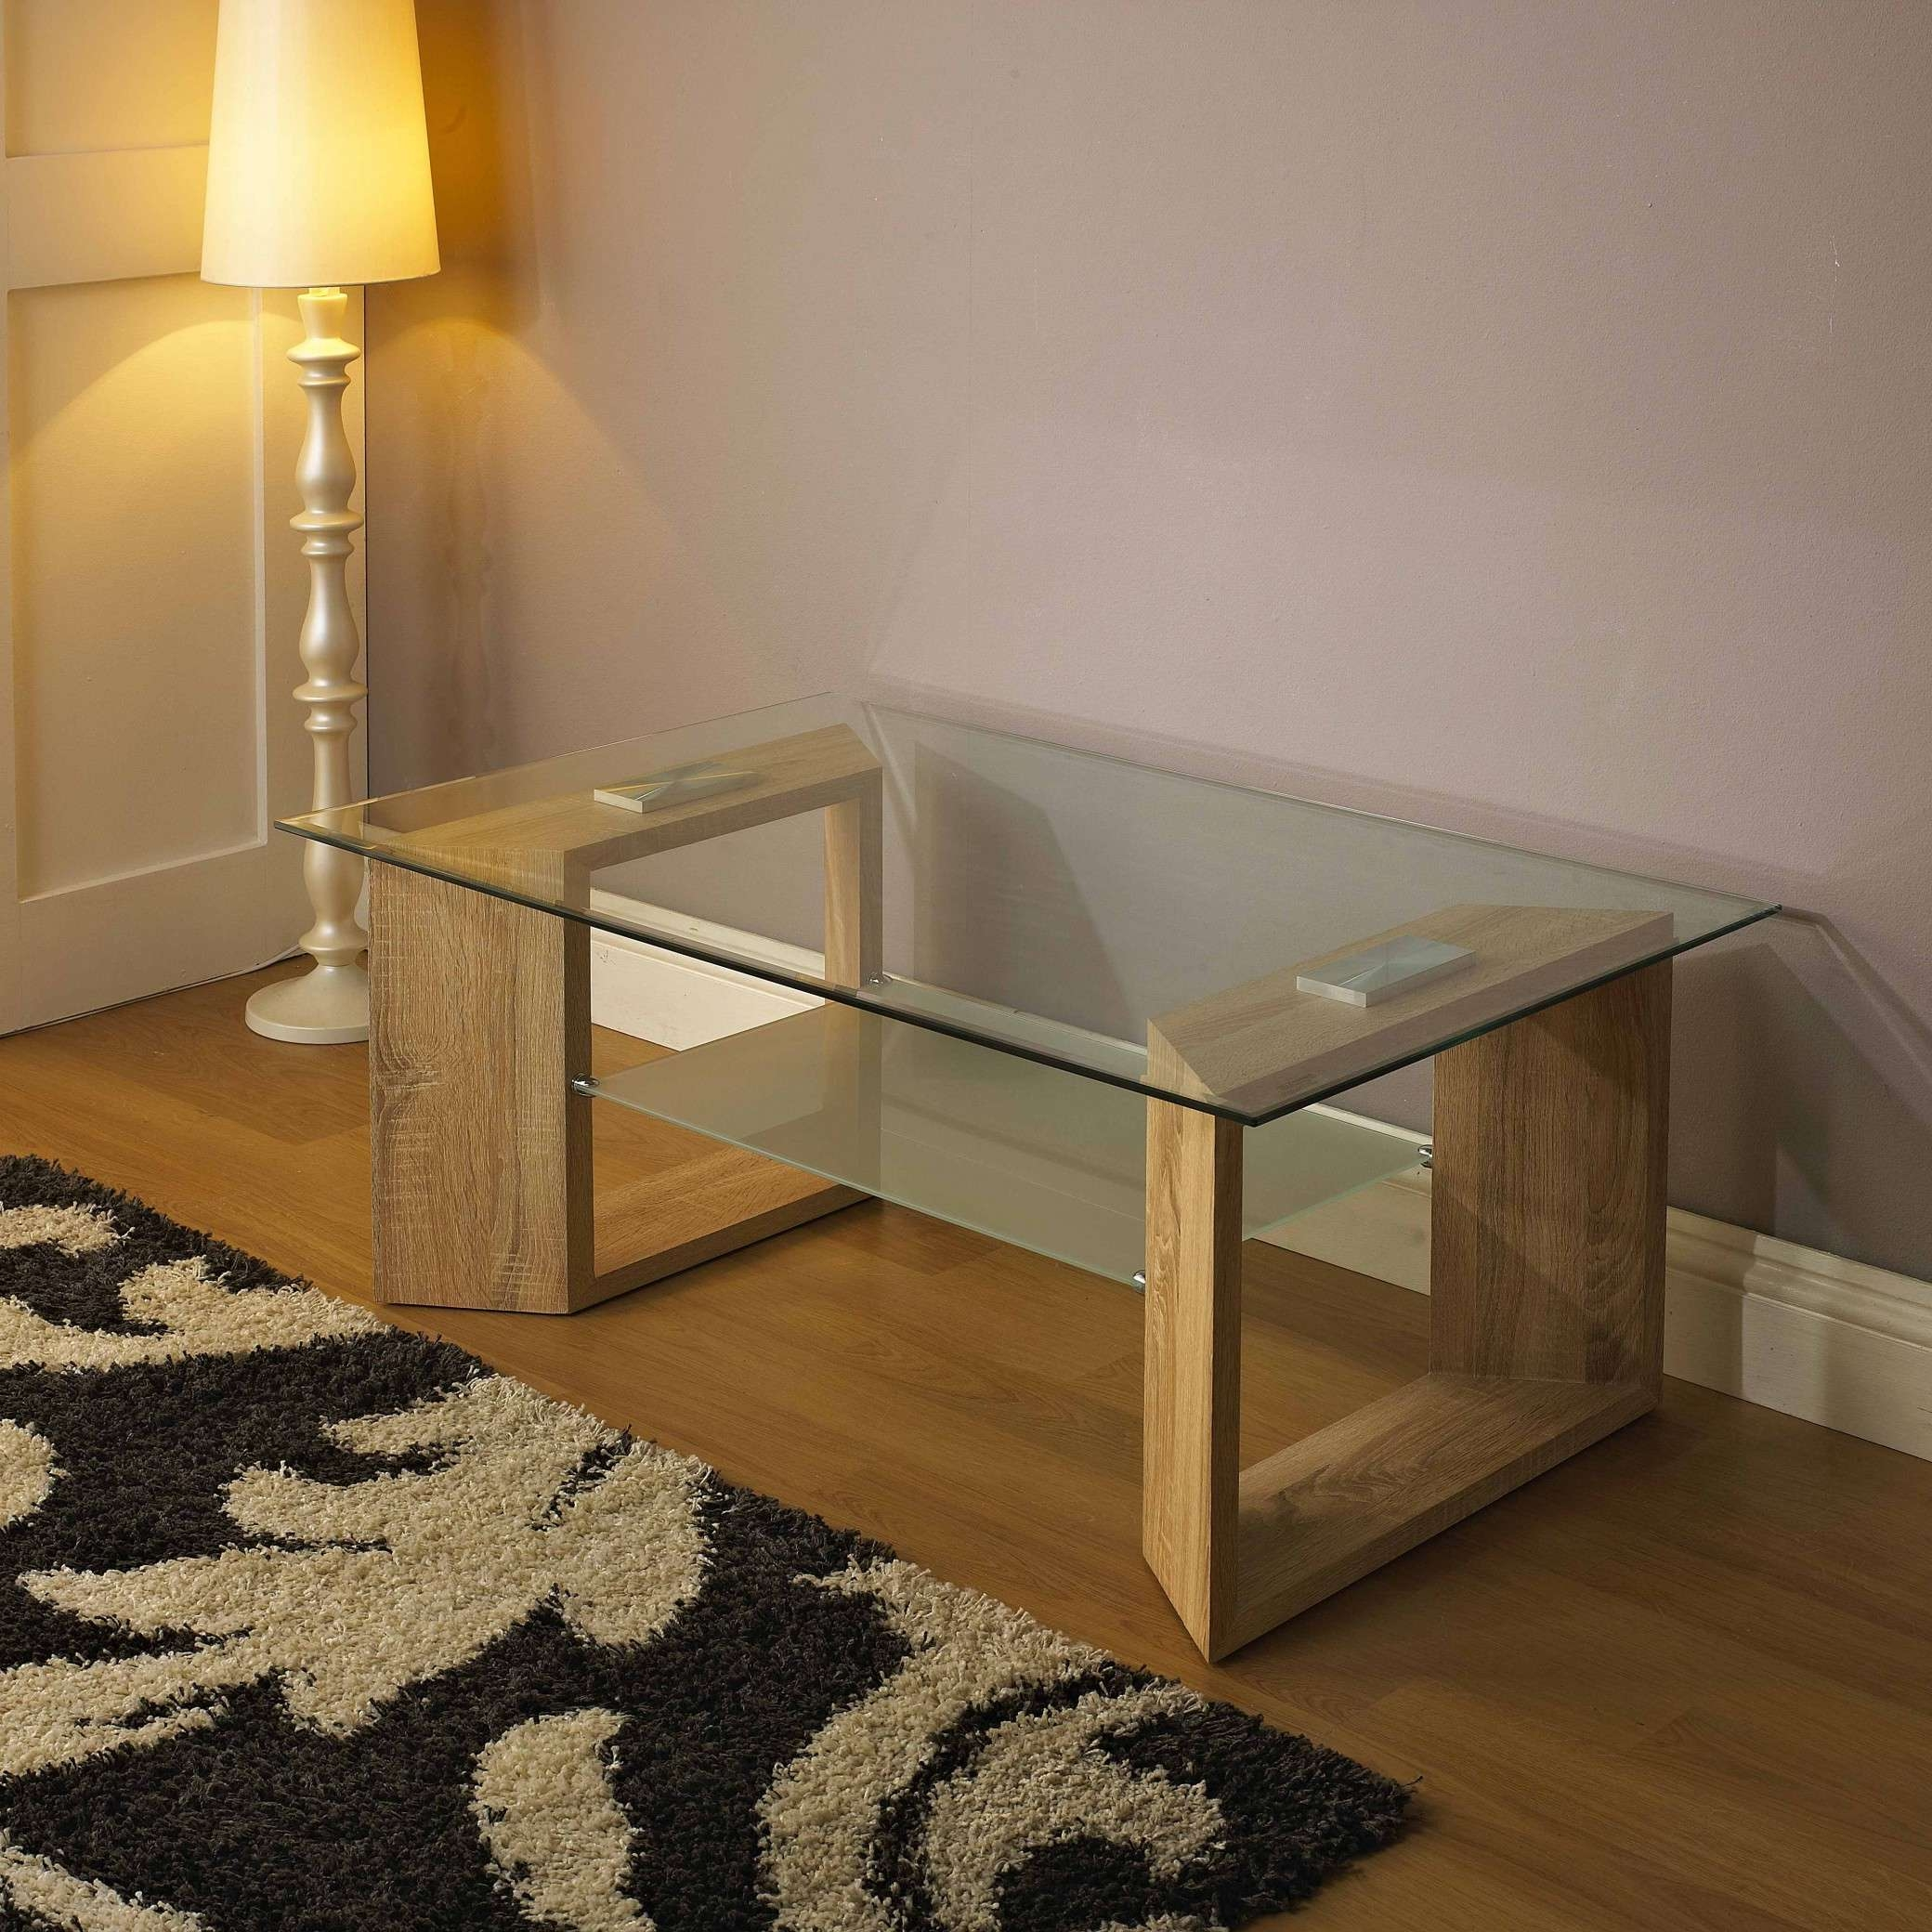 Midland Furniture Company With Favorite Glass And Oak Coffee Tables (View 15 of 20)